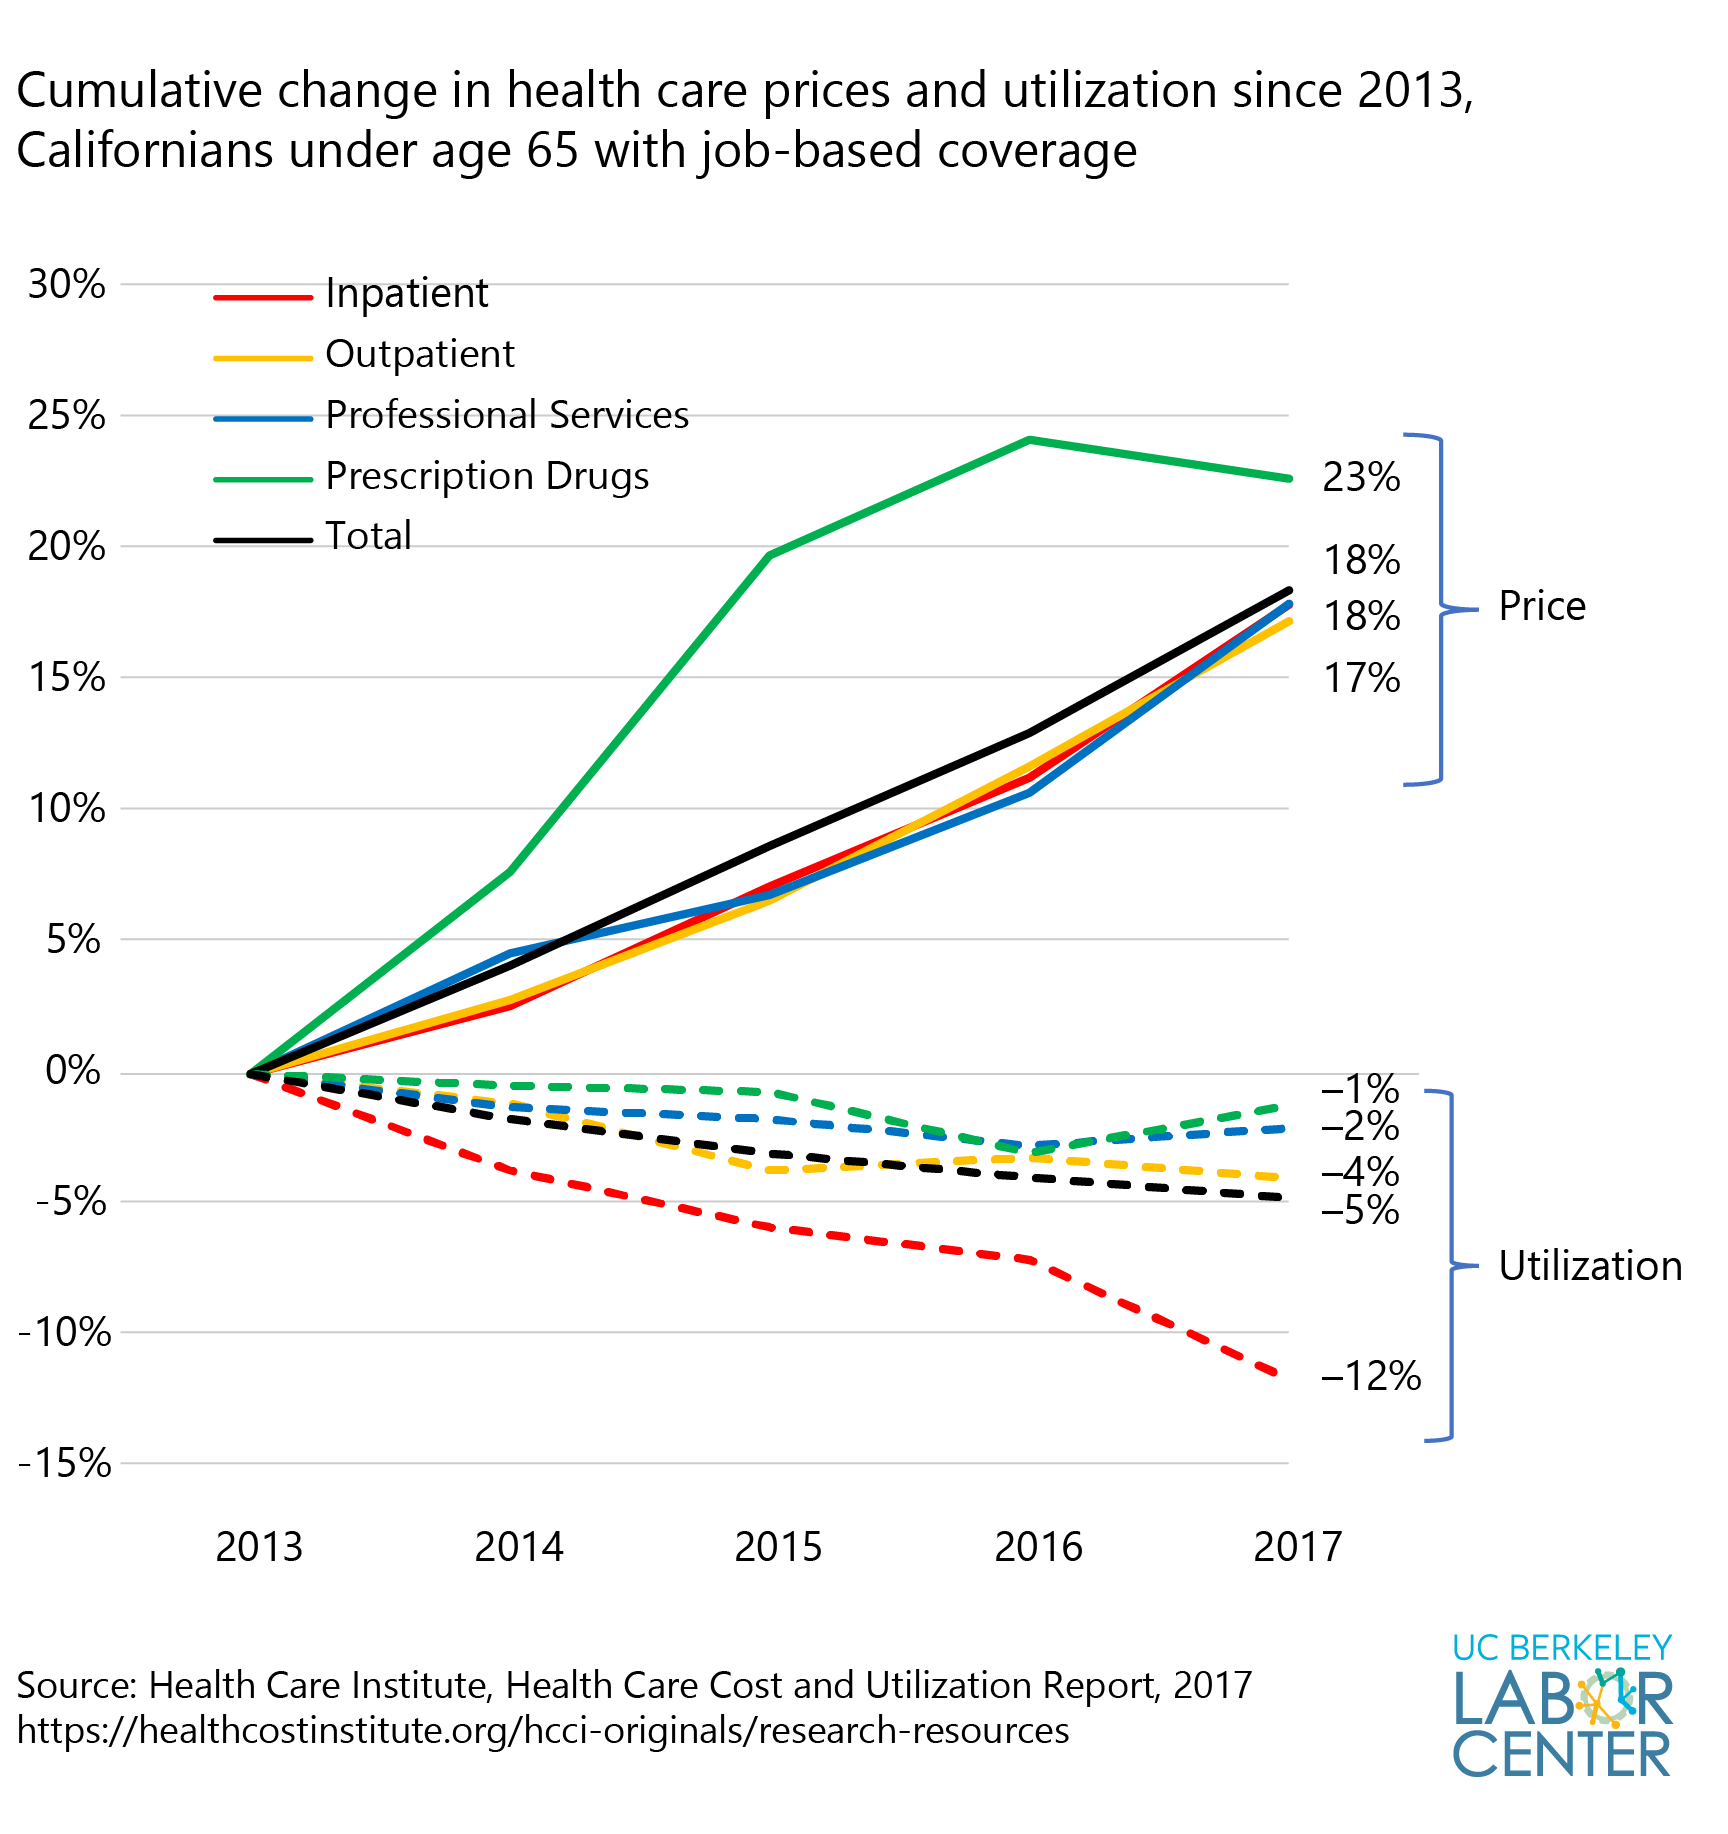 Cumulative change in health care prices and utilization since 2013